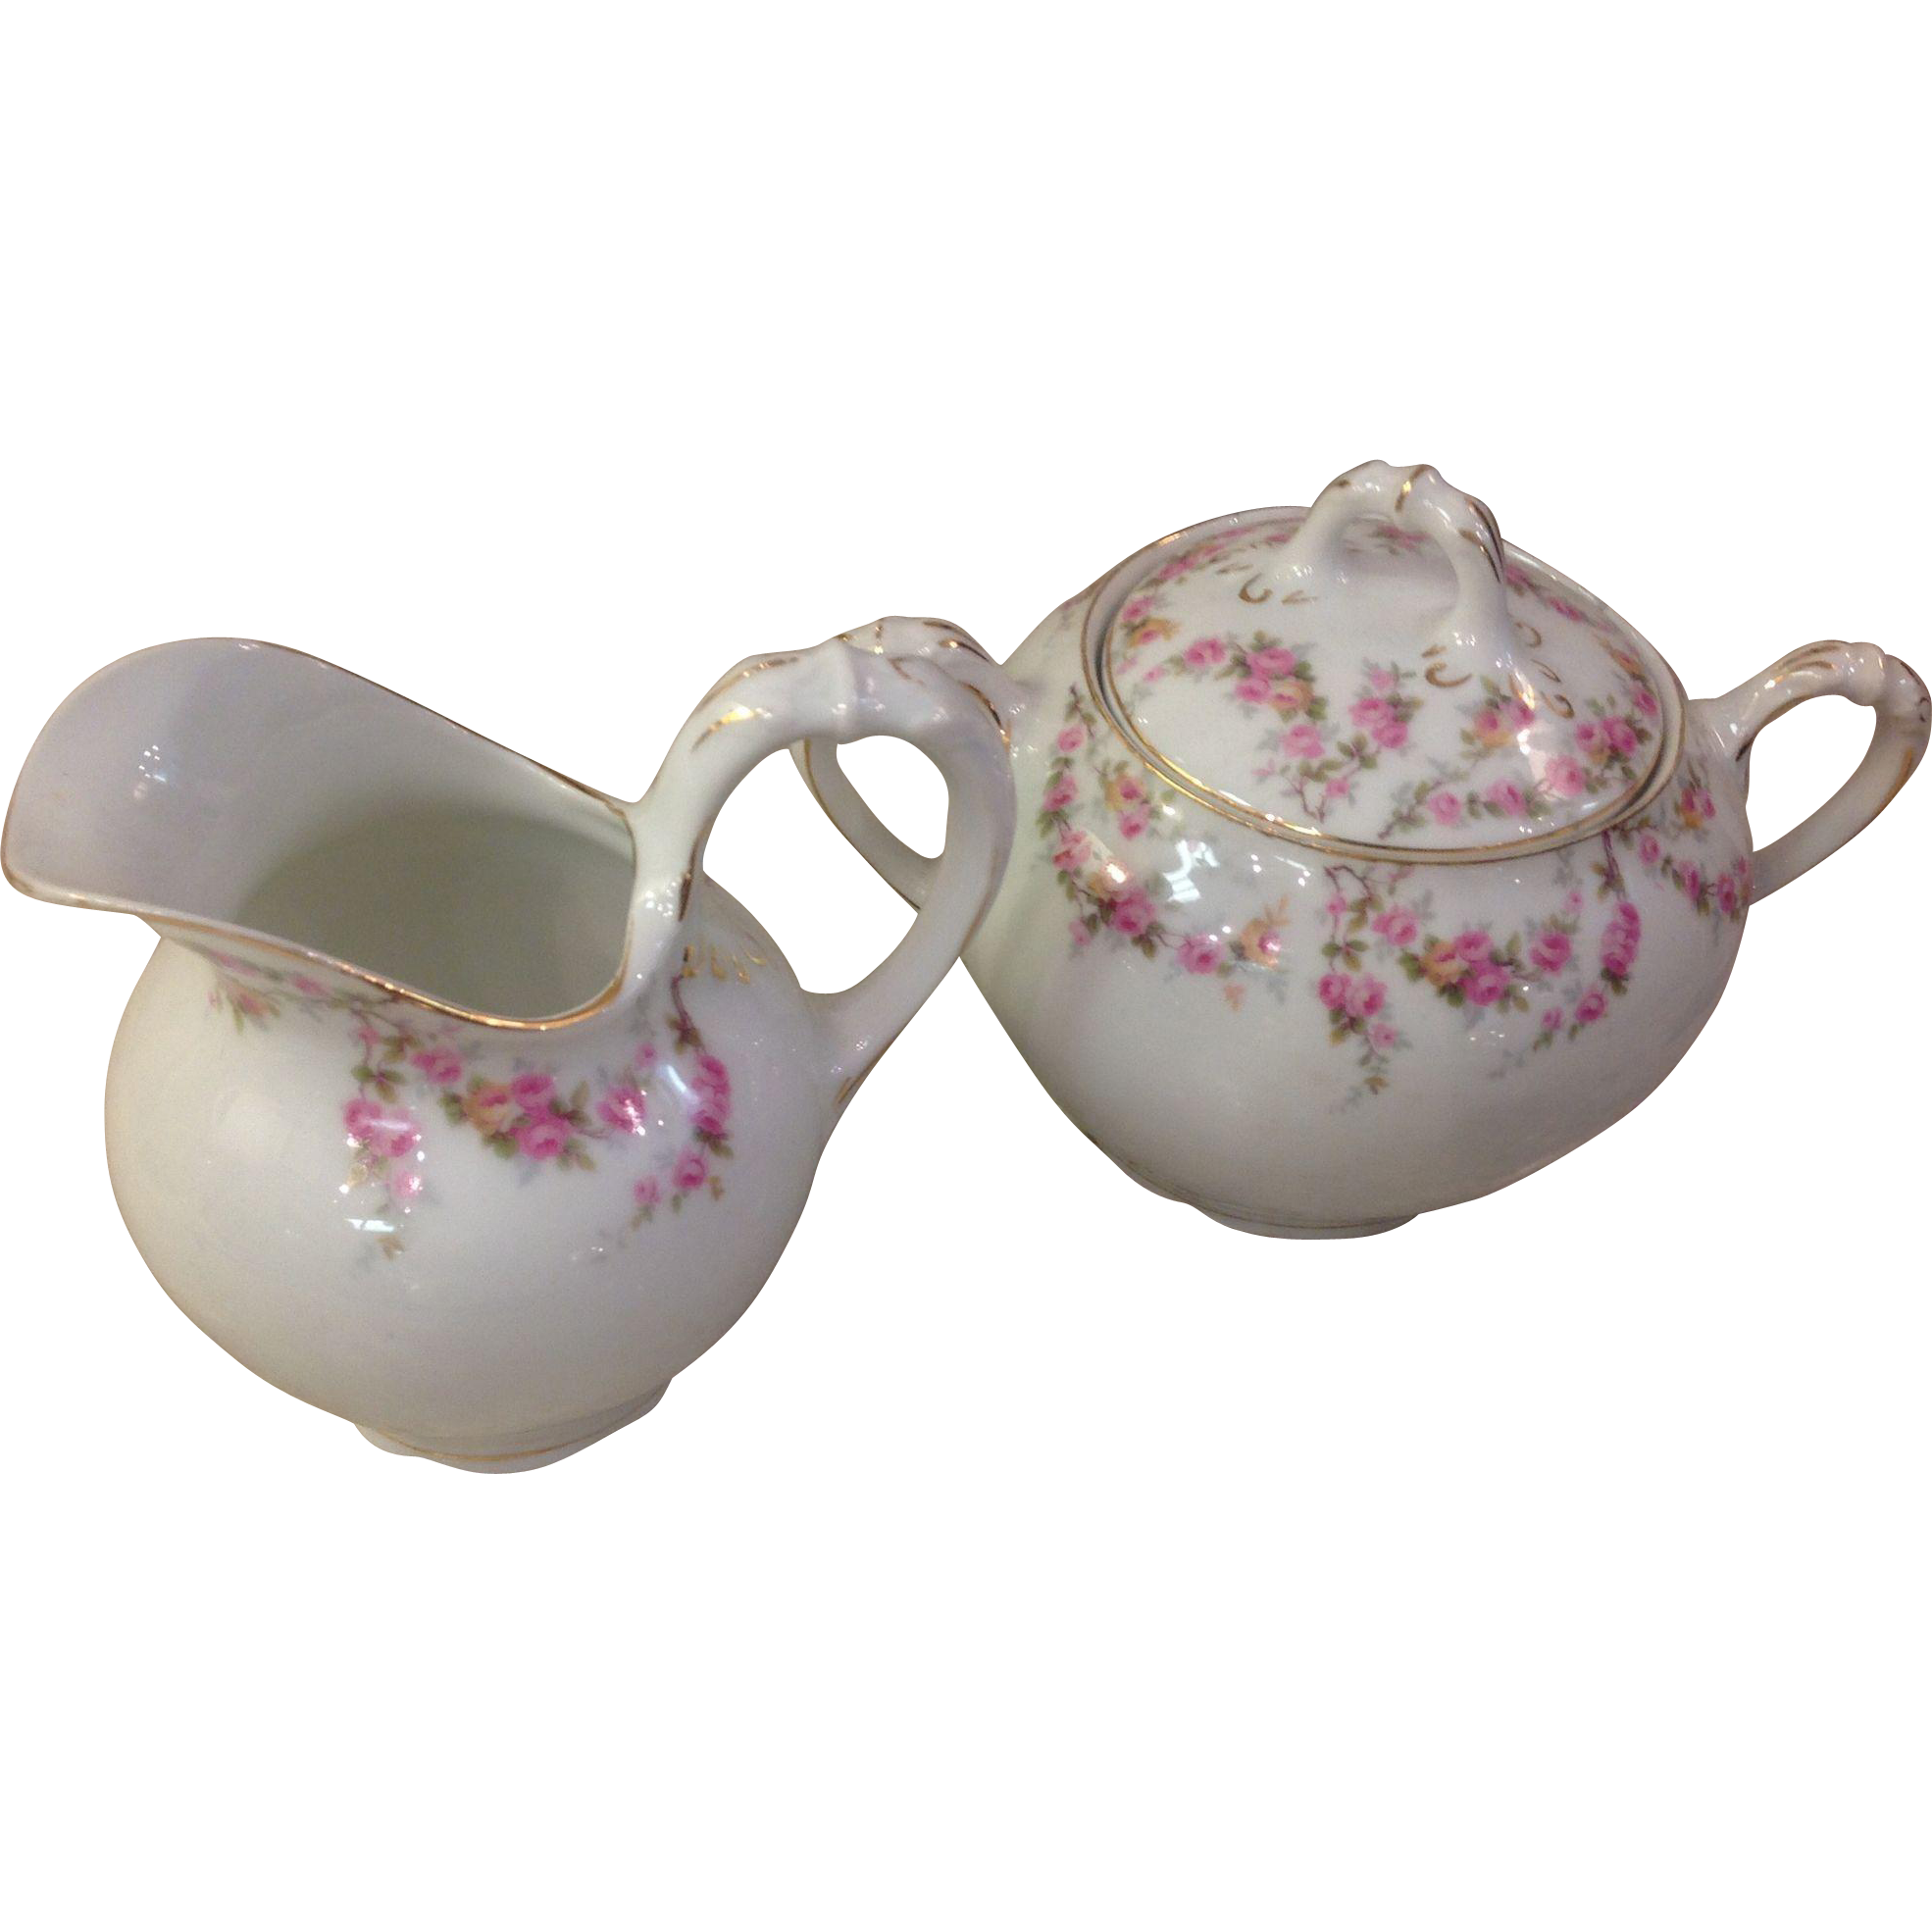 Royal Schwarzburg China RSC15 Sugar & Creamer Pink Rose Garland Design c.1915